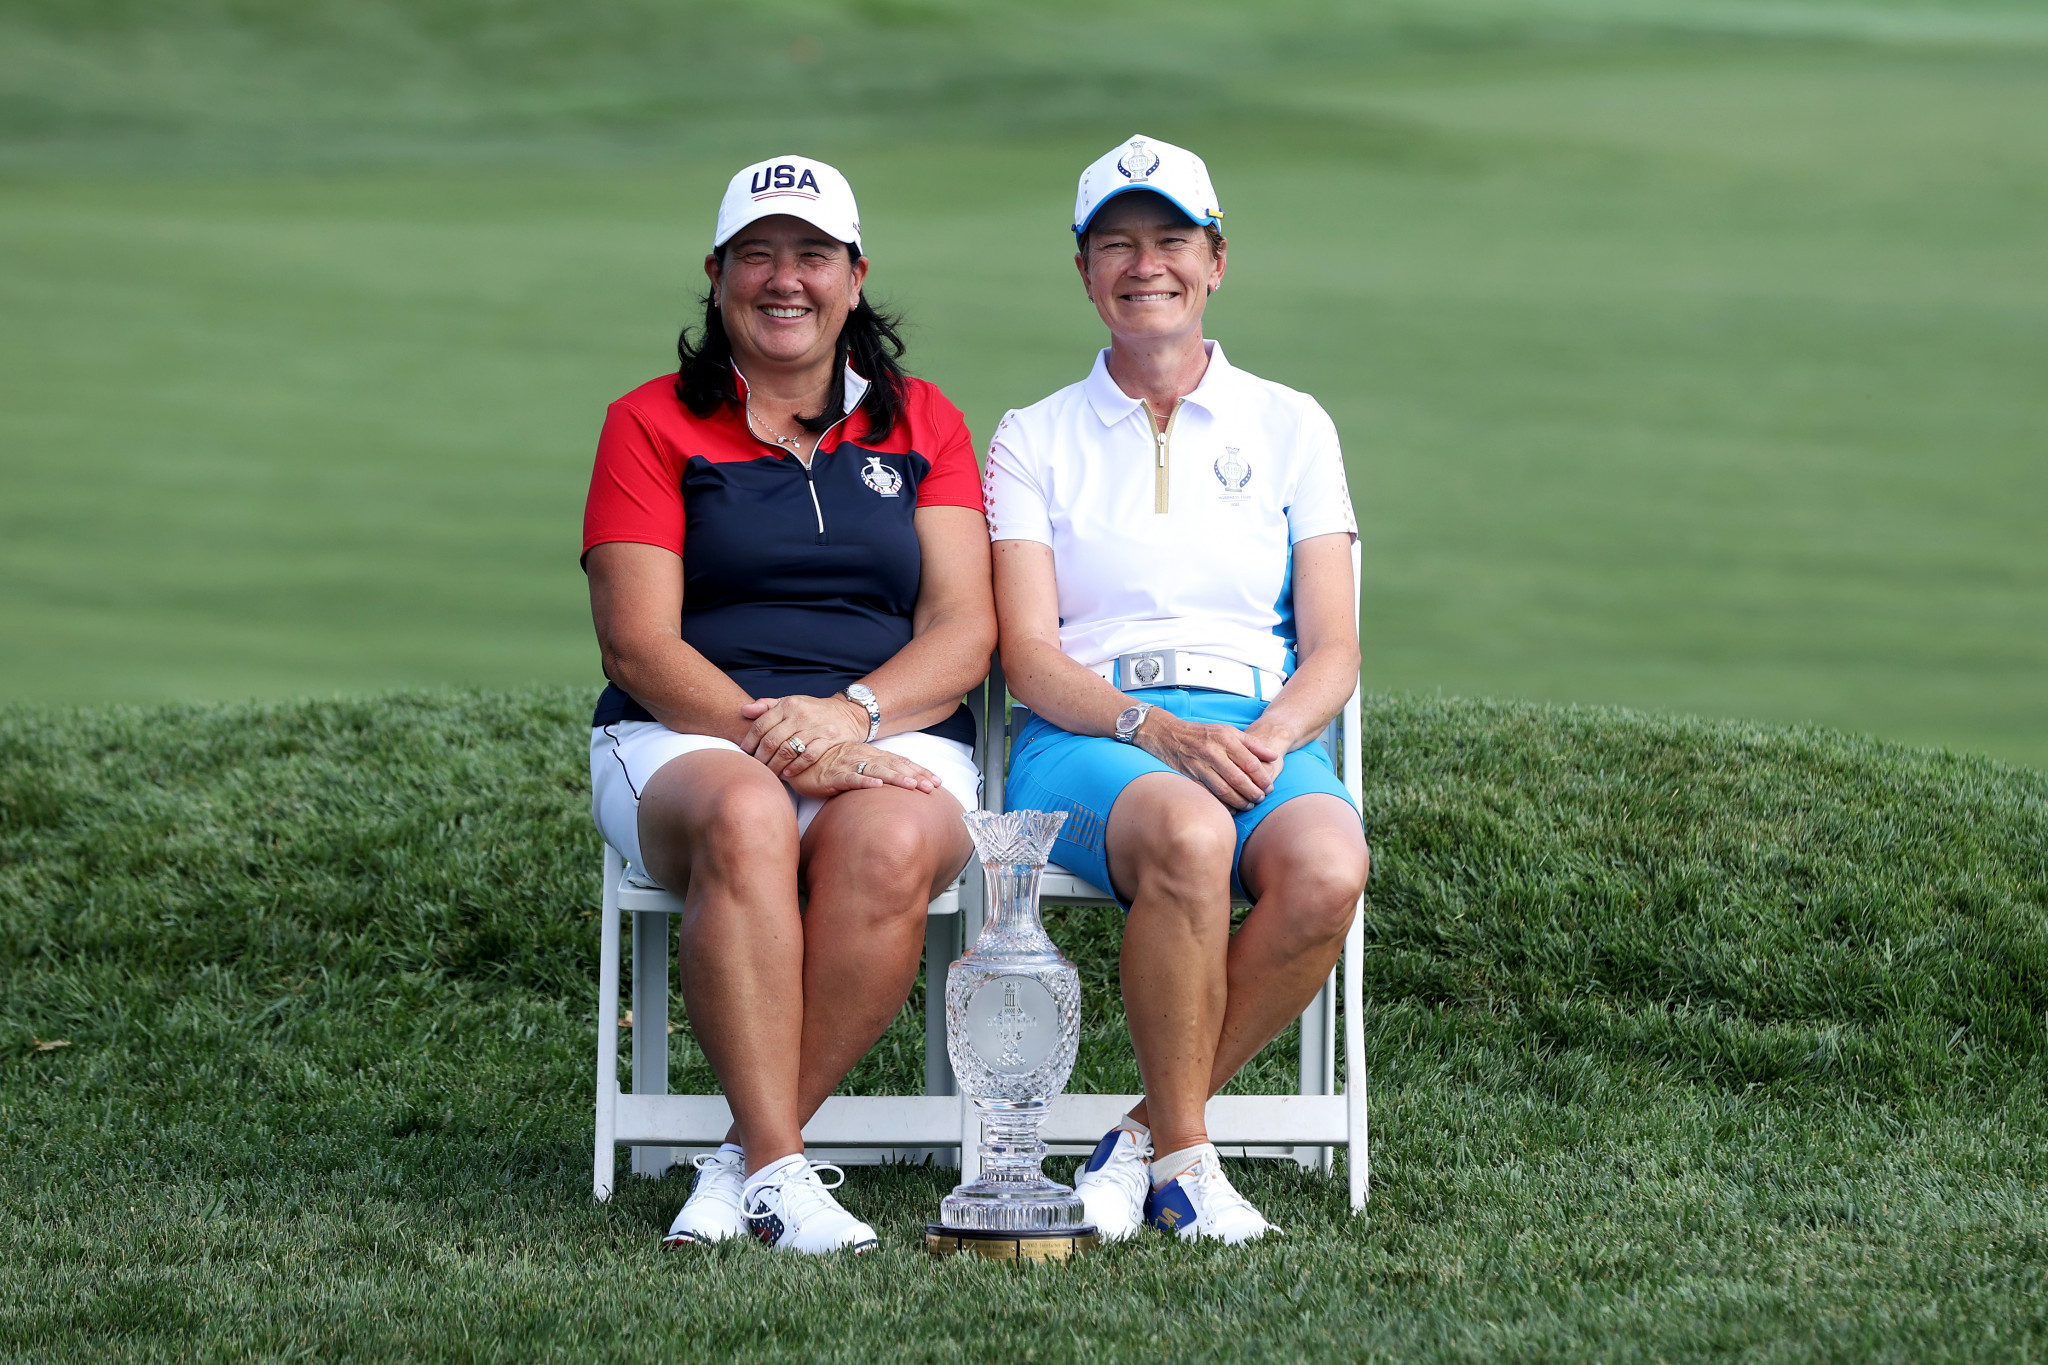 Team Europe chasing history as Solheim Cup arrives in United States